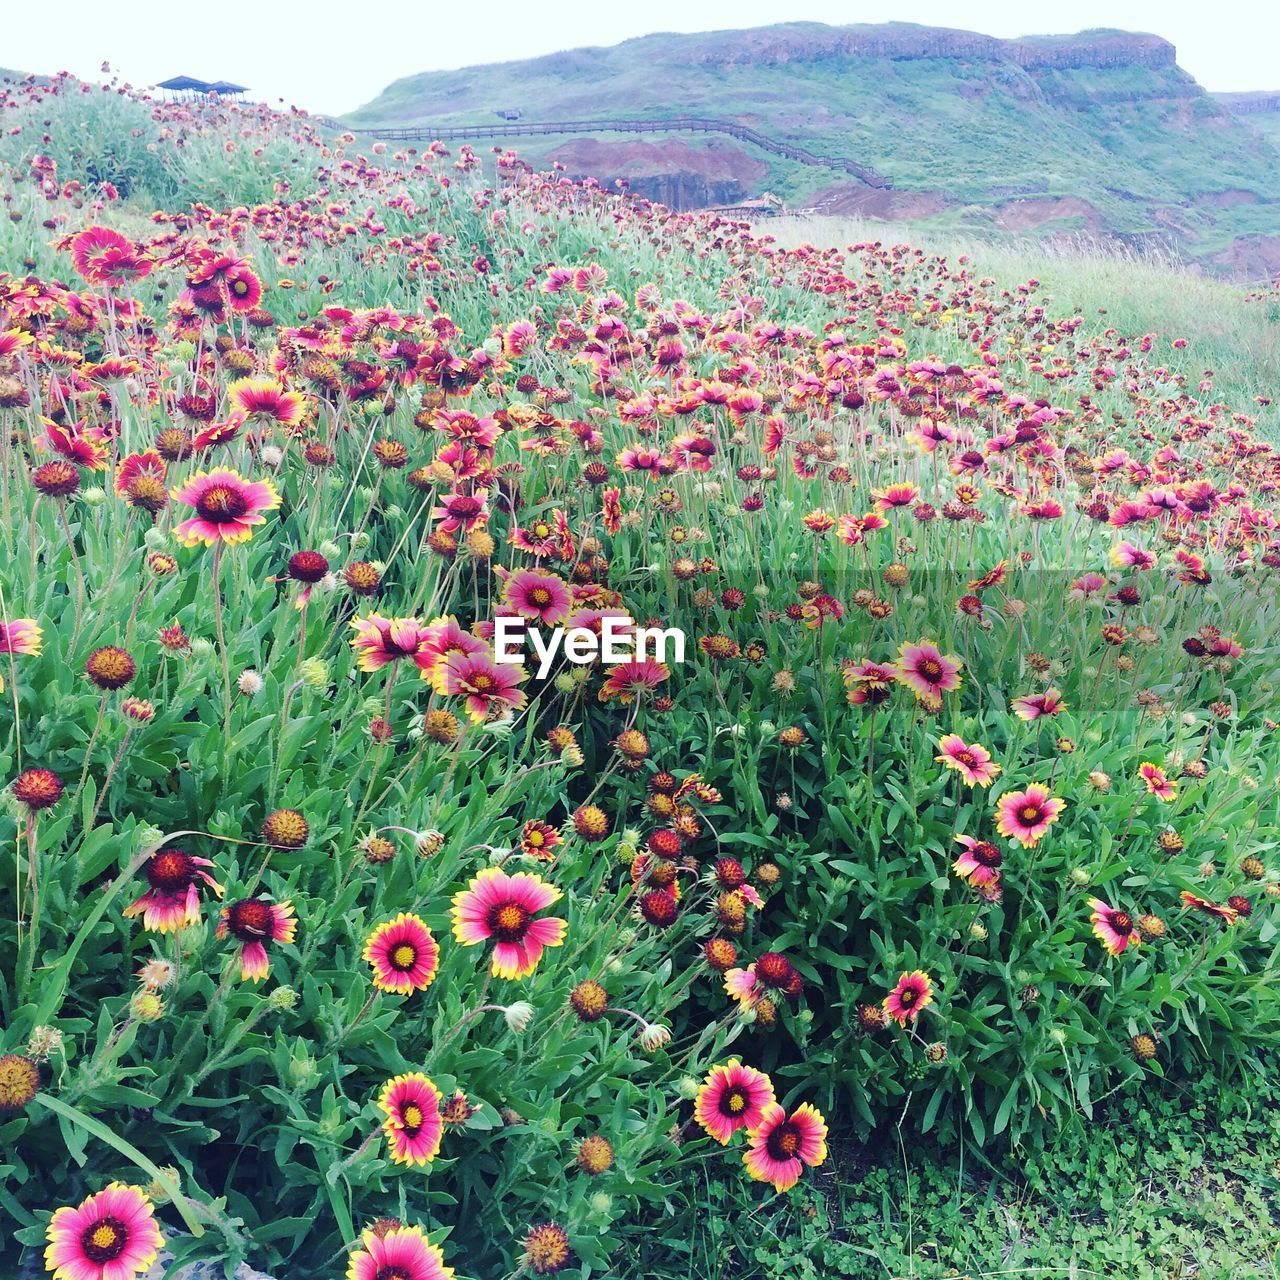 nature, beauty in nature, growth, flower, day, field, scenics, tranquility, outdoors, mountain, no people, plant, tranquil scene, green color, landscape, freshness, grass, blooming, sky, fragility